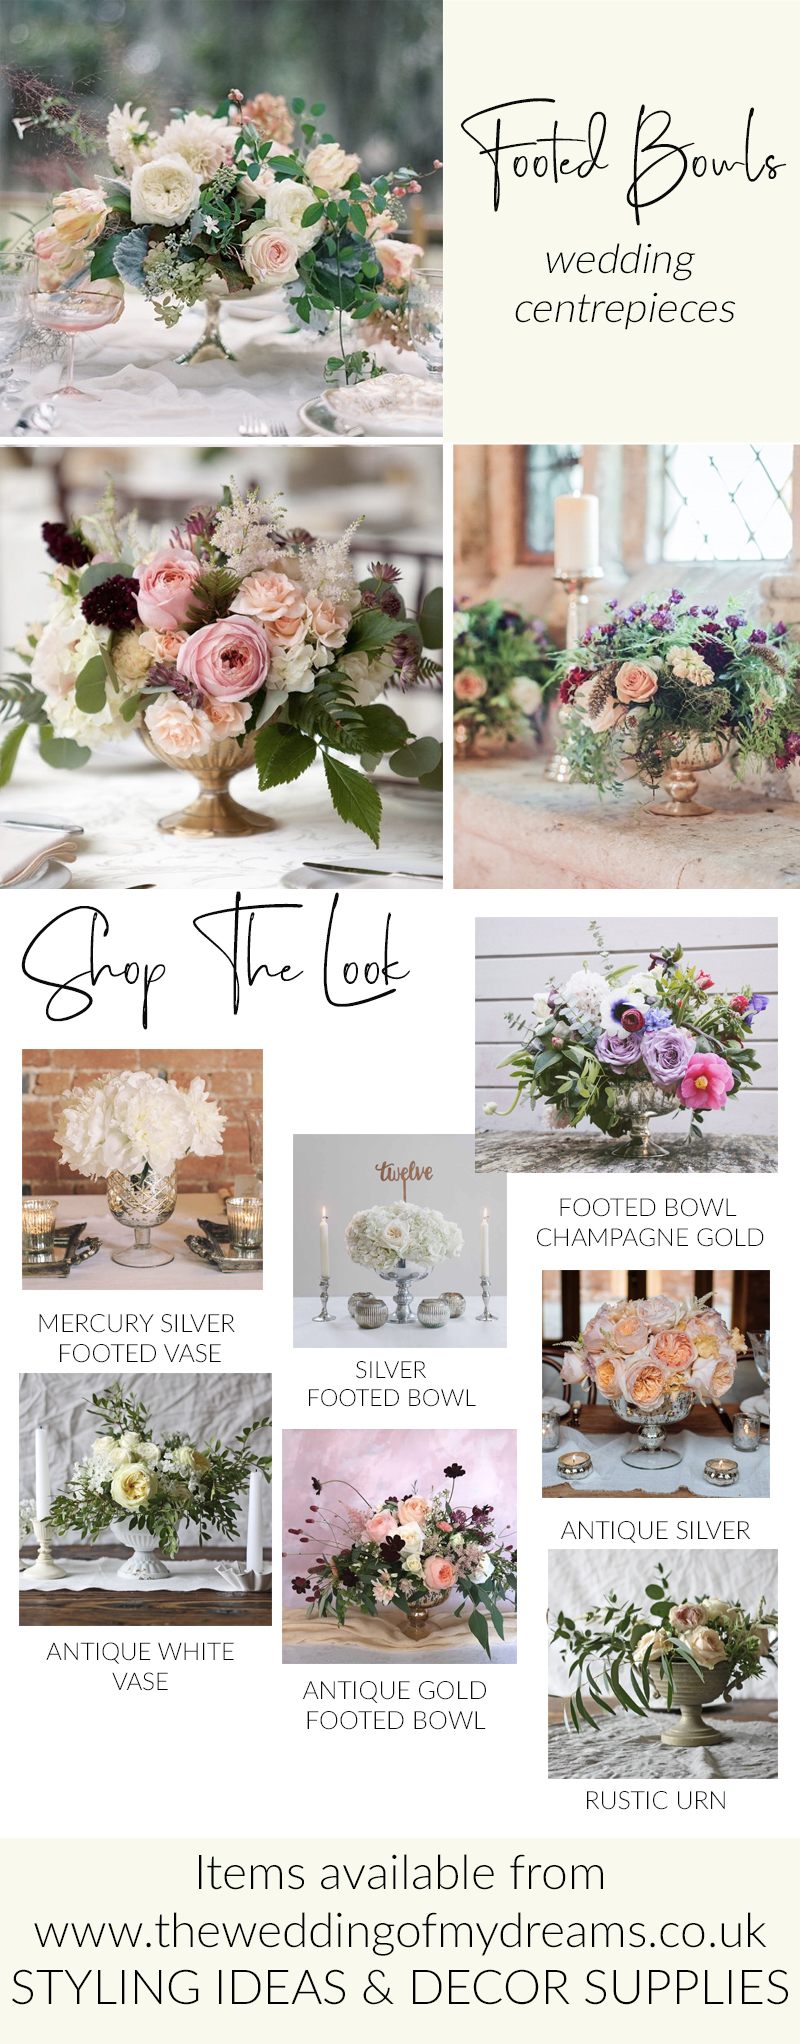 LOW WEDDING CENTREPIECES FOOTED BOWLS